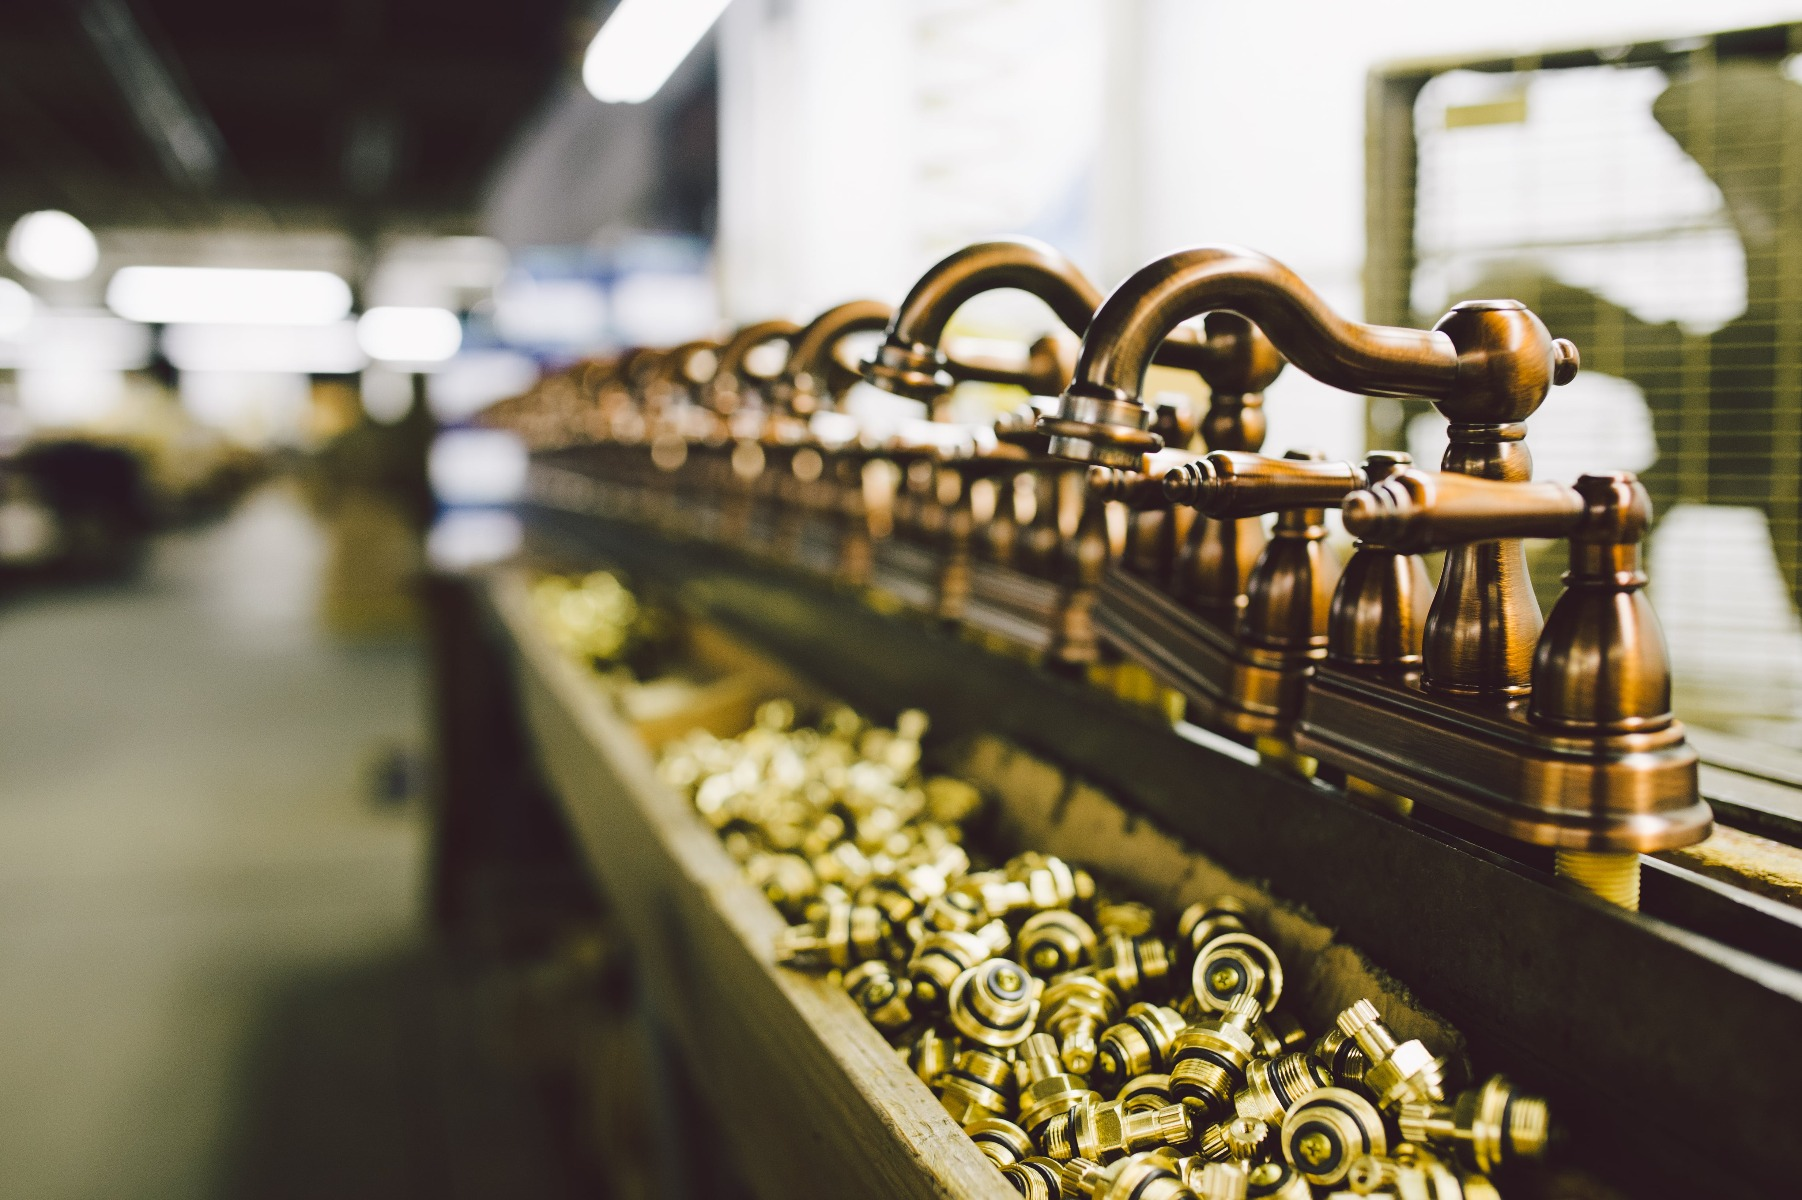 Faucets in production line at factory in Cleveland, Ohio